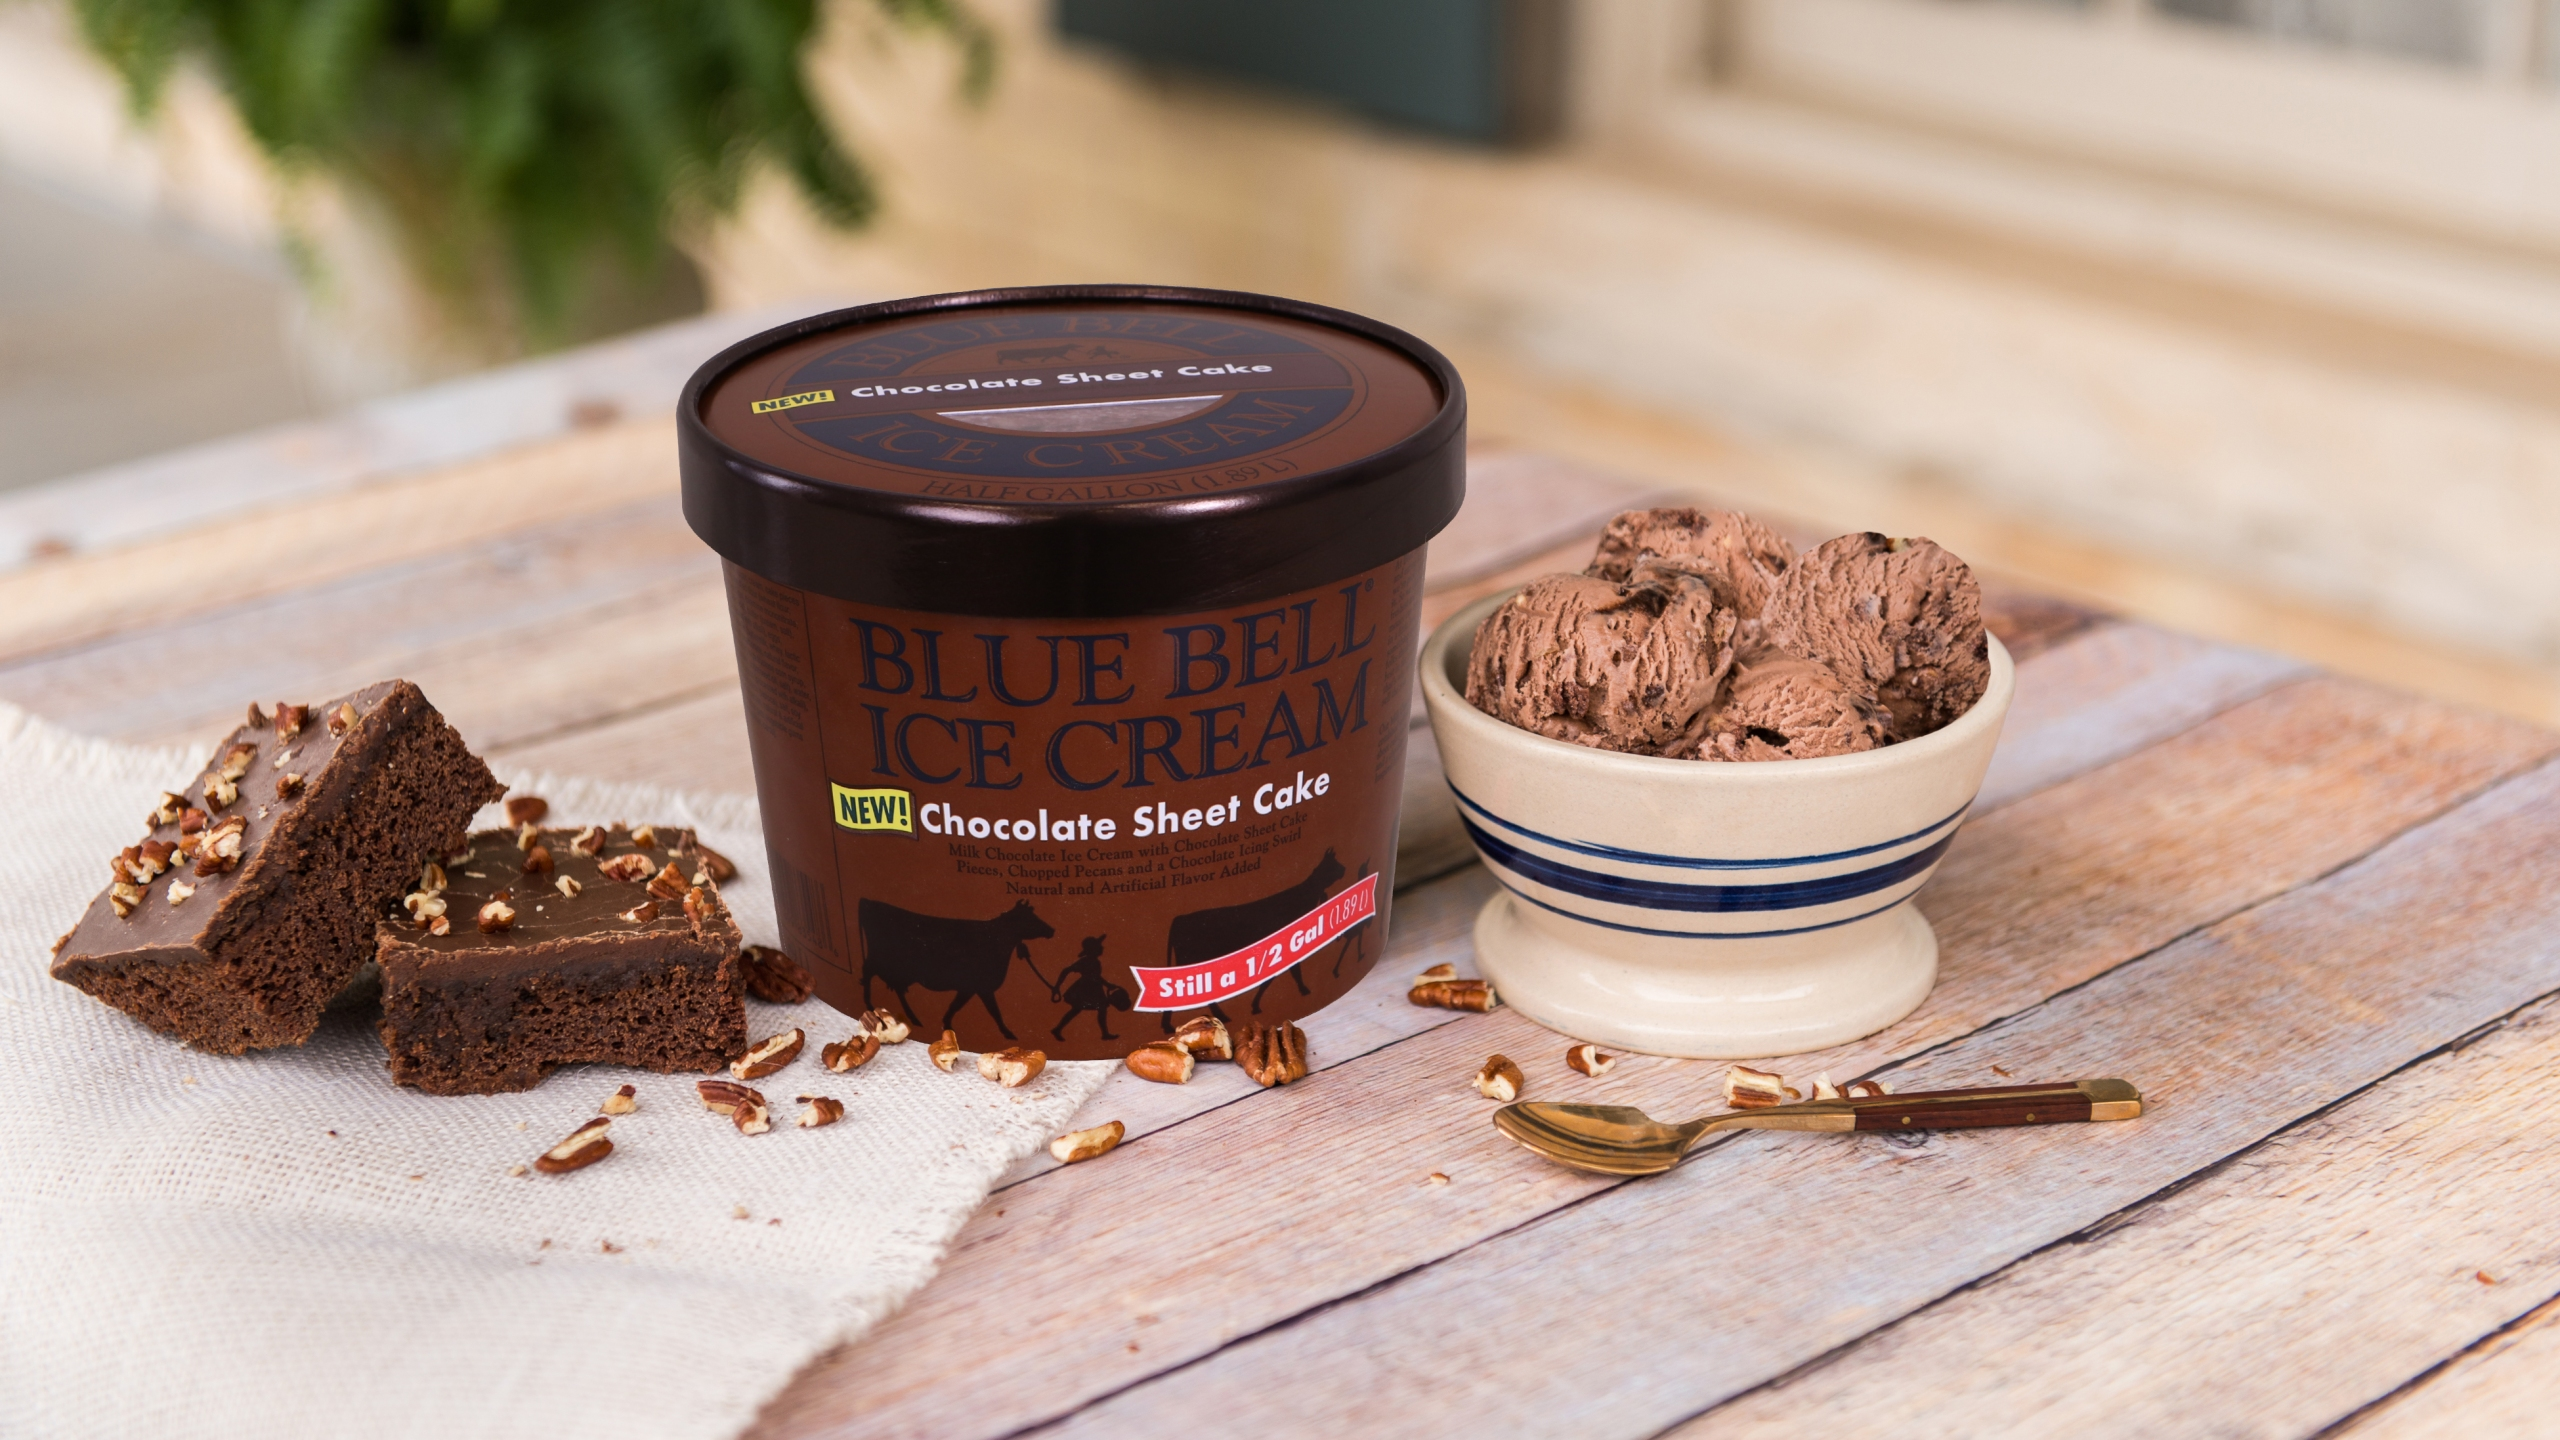 Chocolate Sheet Cake ice cream. (Photo courtesy Blue Bell Creameries, LP)